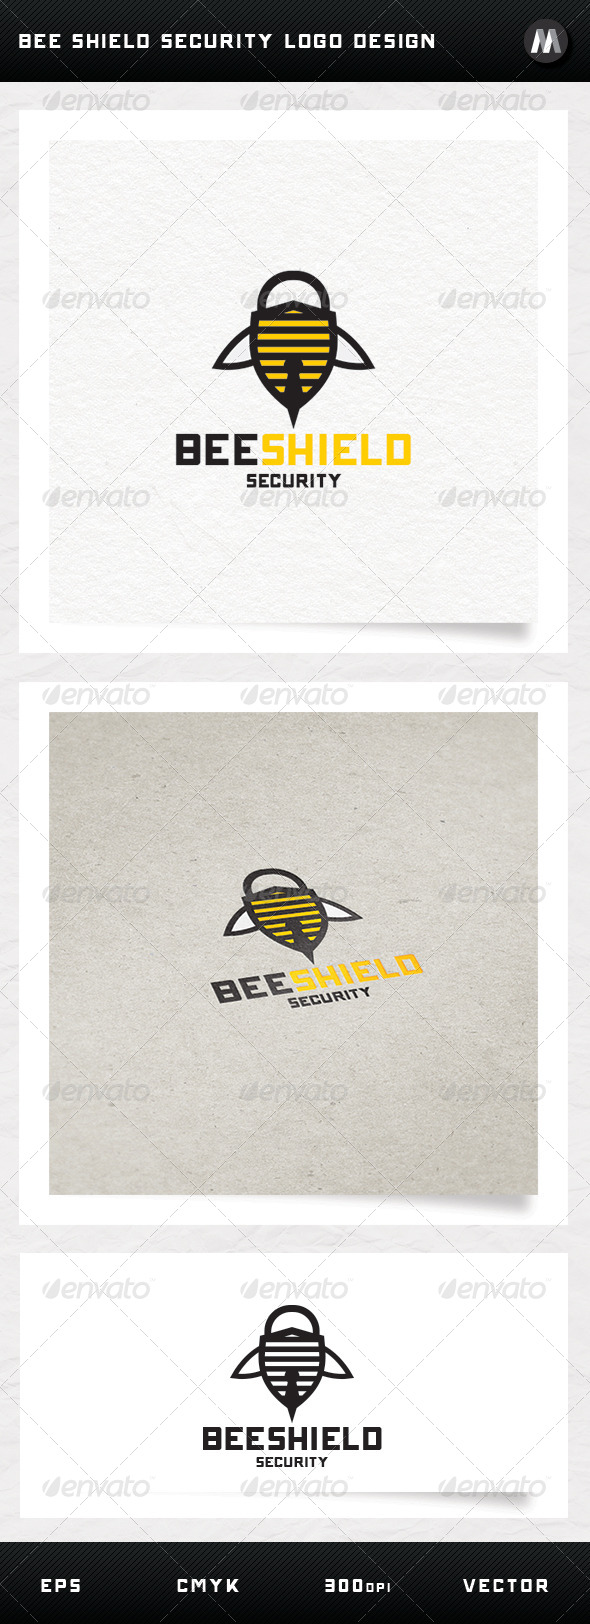 GraphicRiver Bee Shield Security Logo Design 5273755